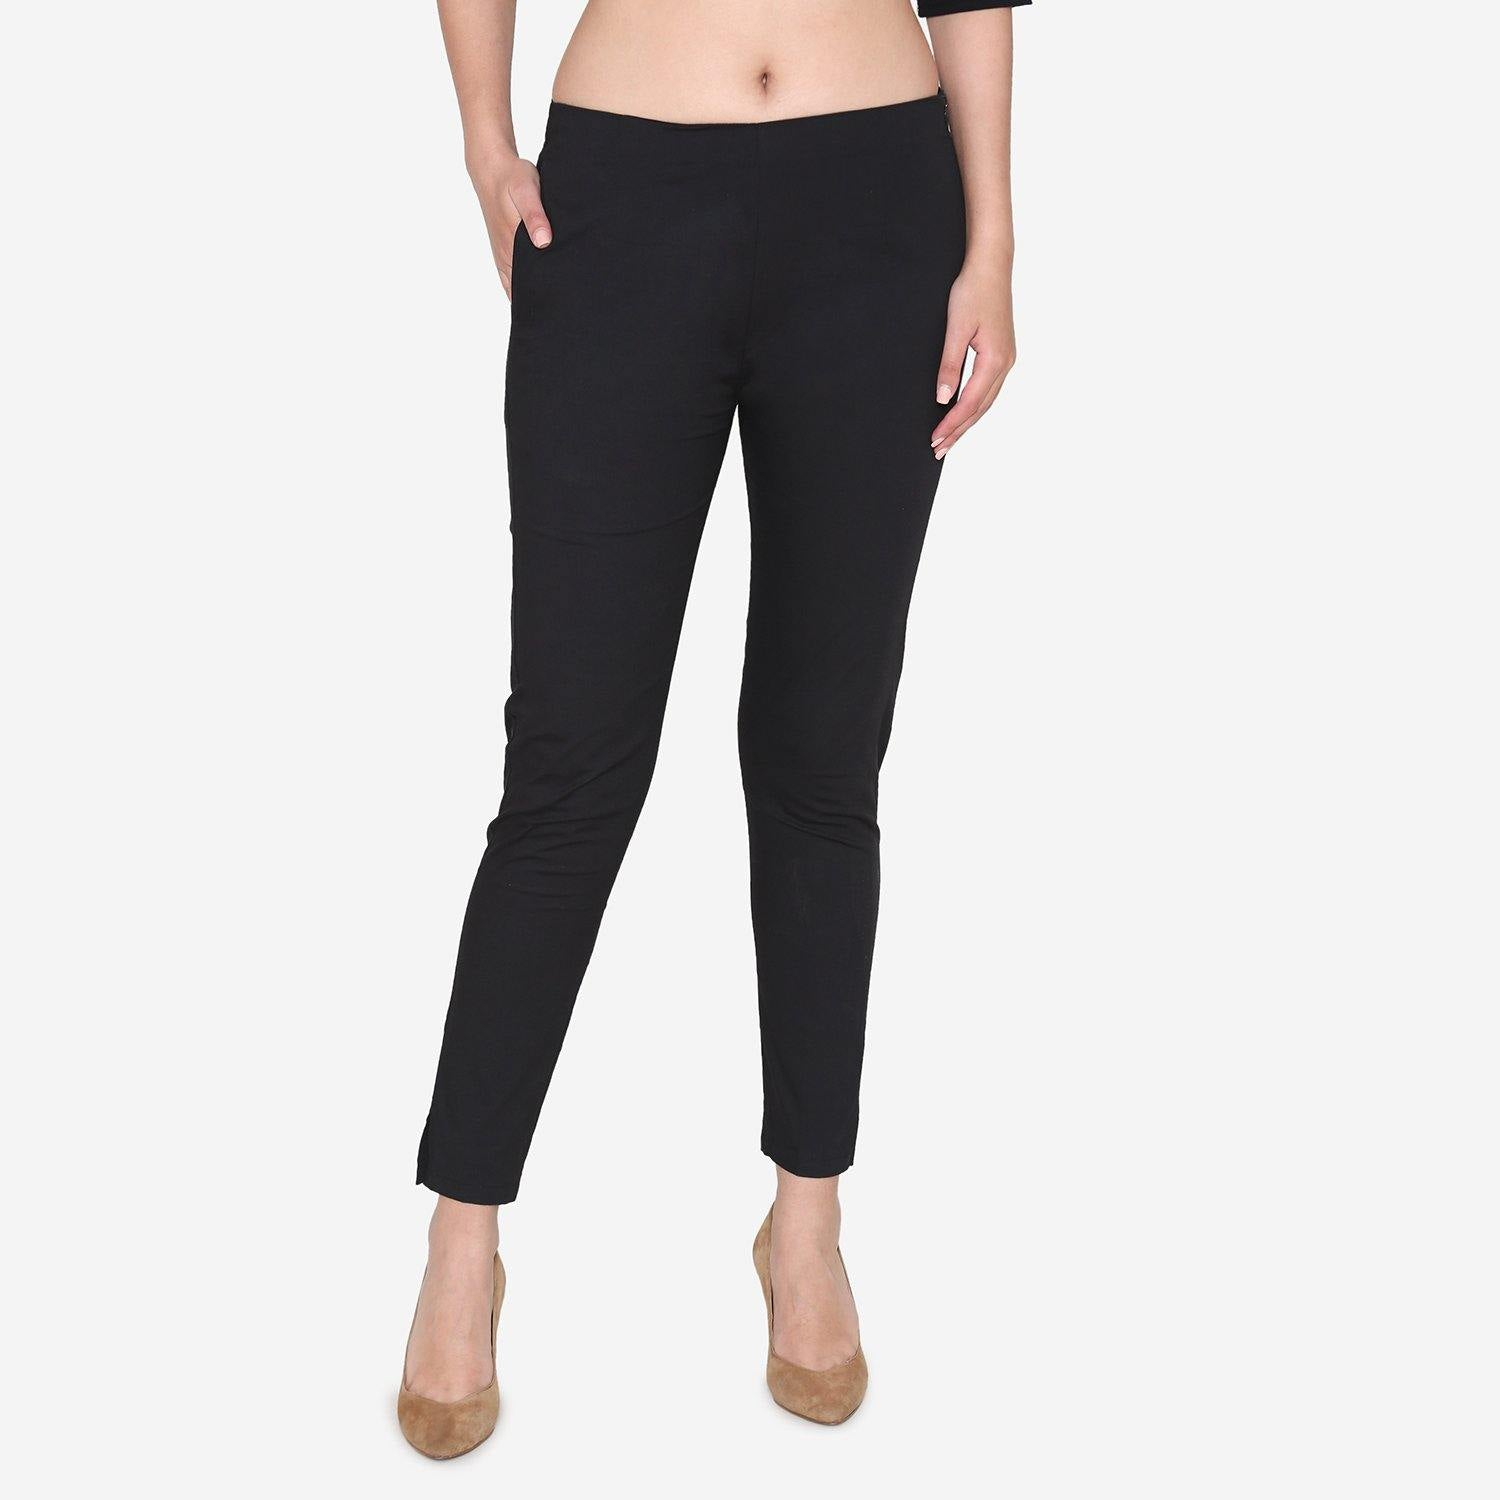 Vami Women's Cotton Formal Trousers - Black